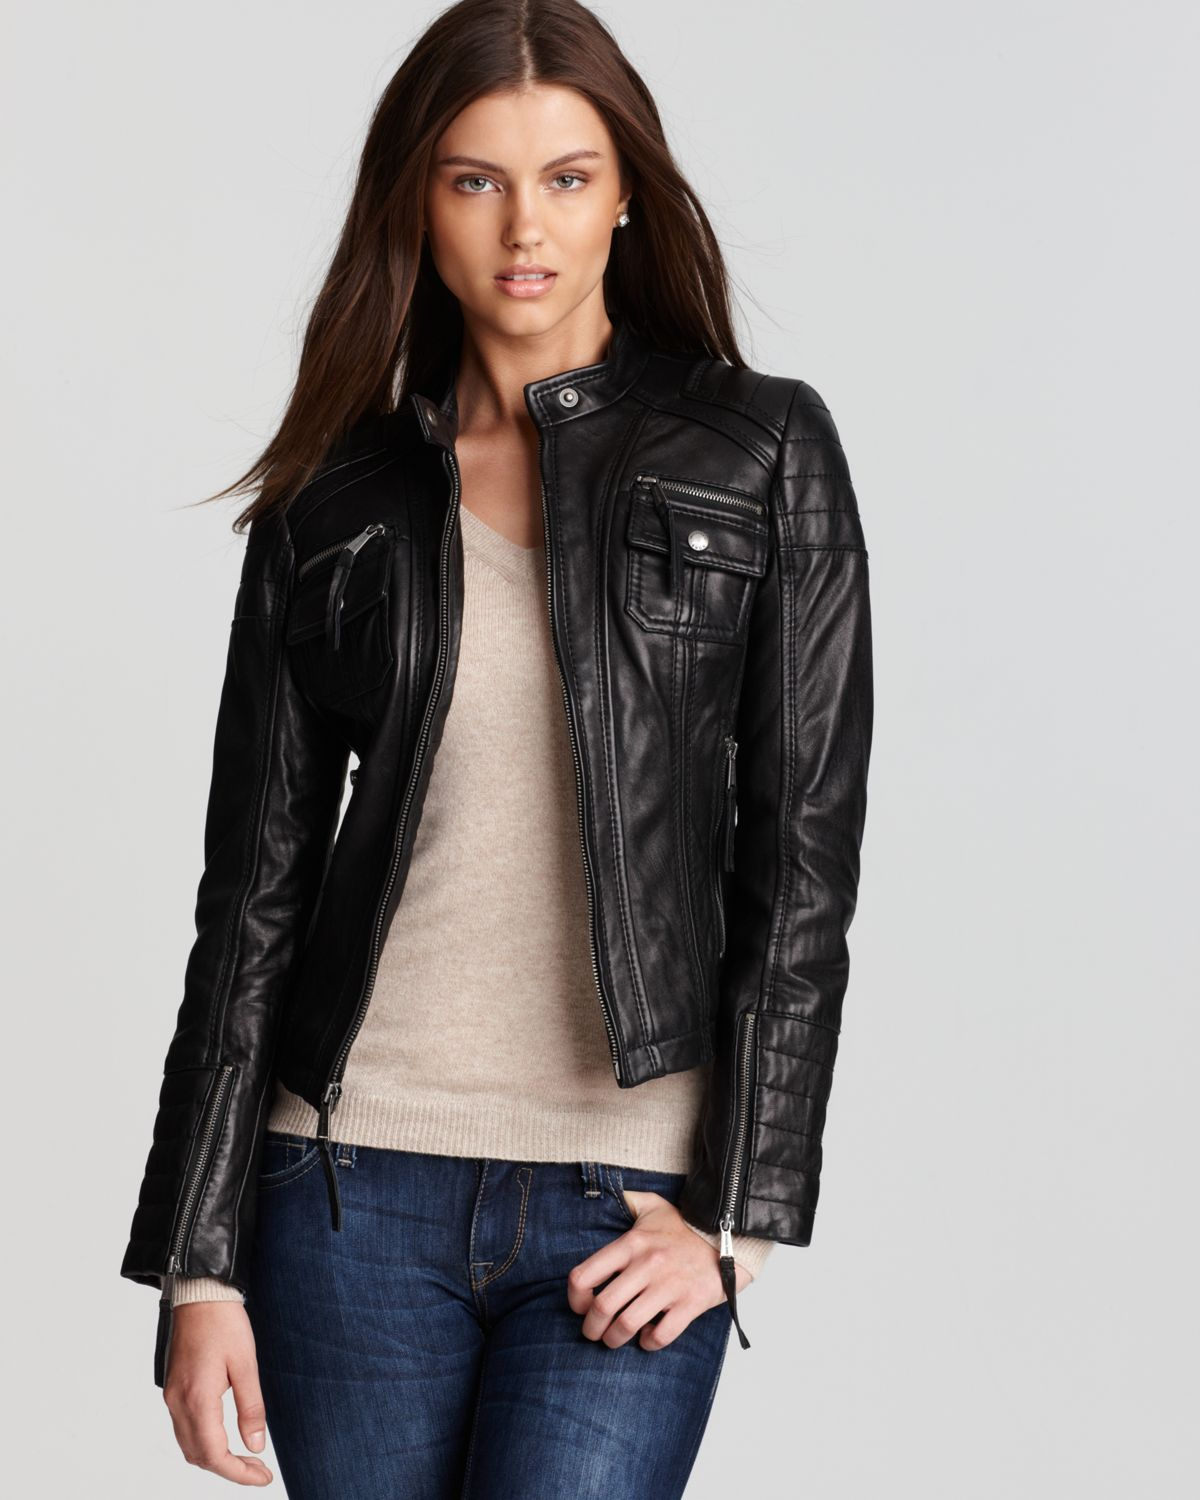 KORS Michael Kors Zip Detail Moto Leather Jacket | Bloomingdale's